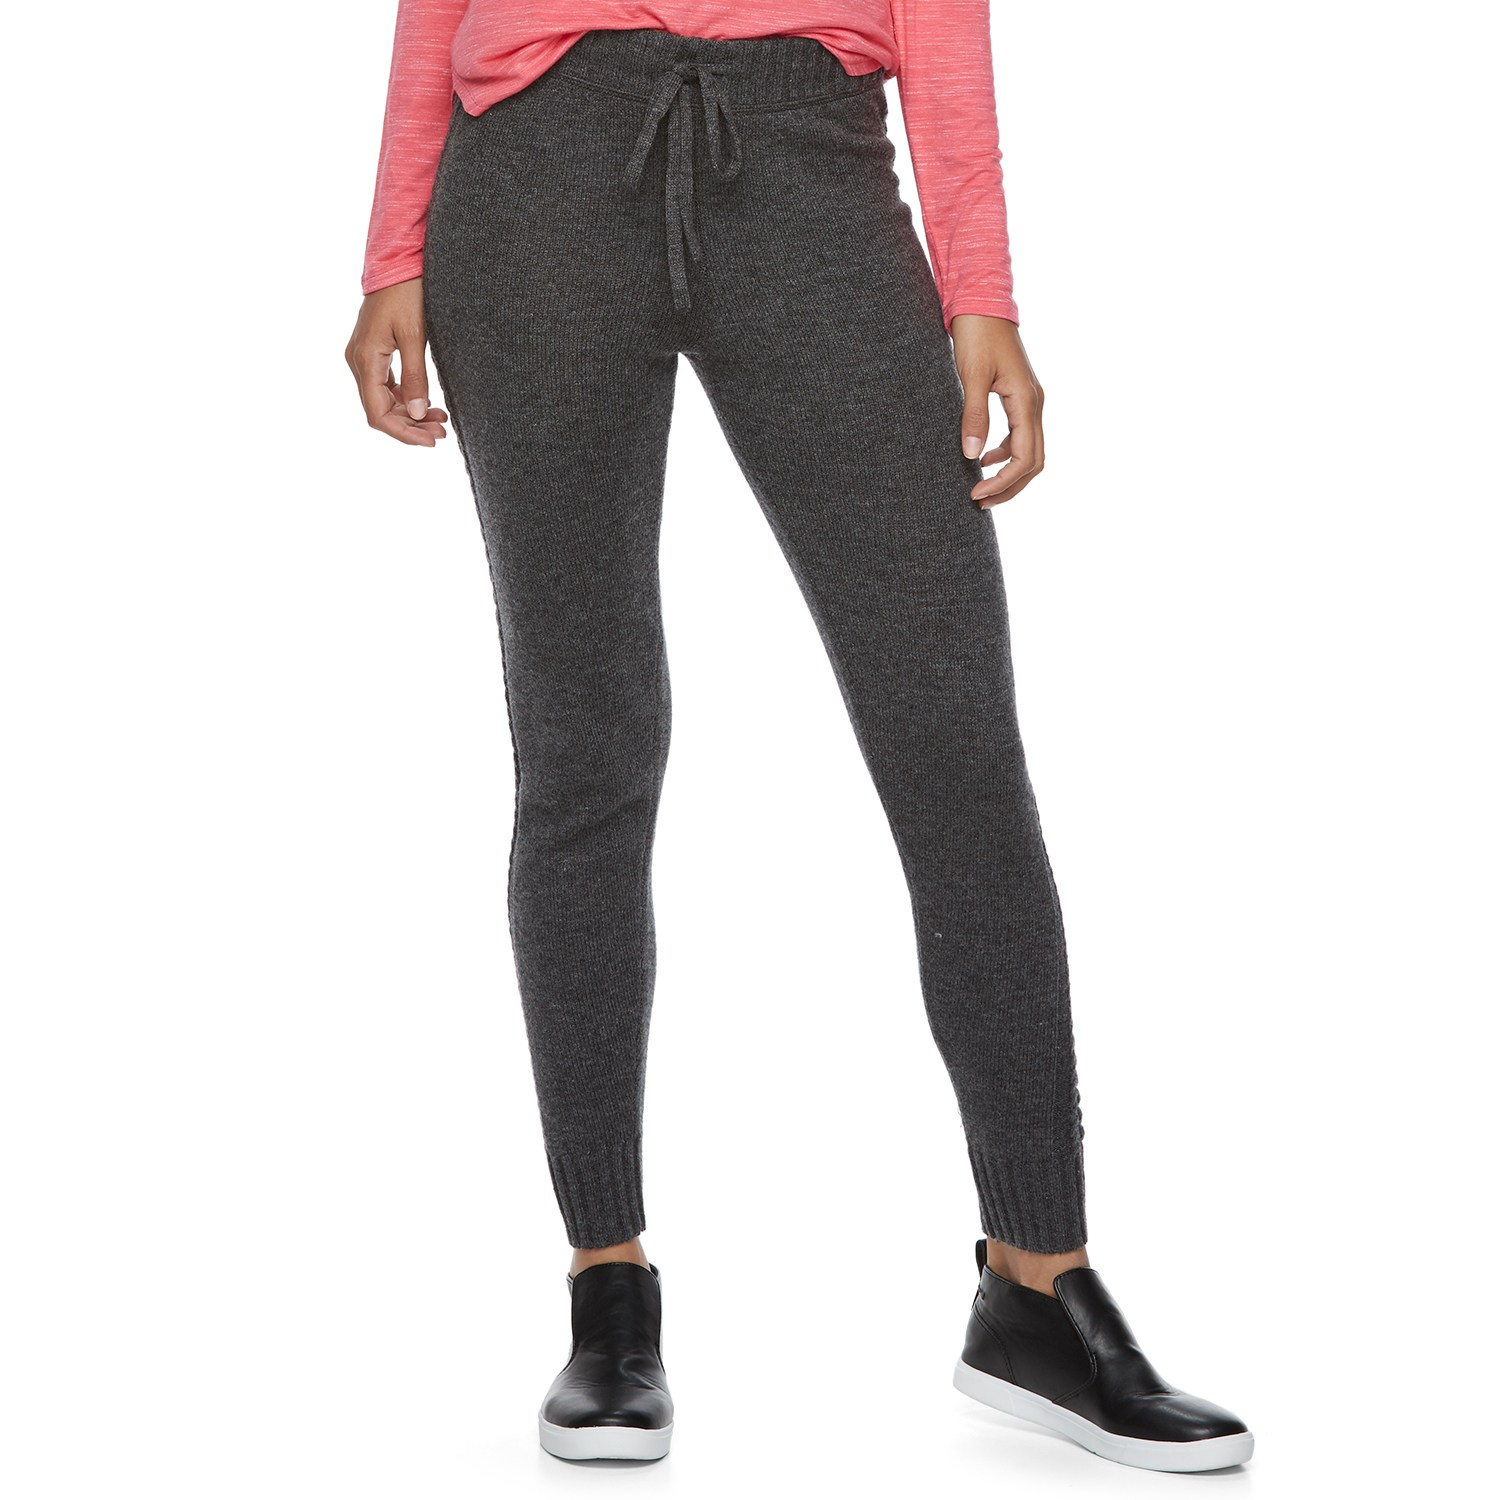 juniorsu0027 so® drawstring sweater leggings efwnwkx